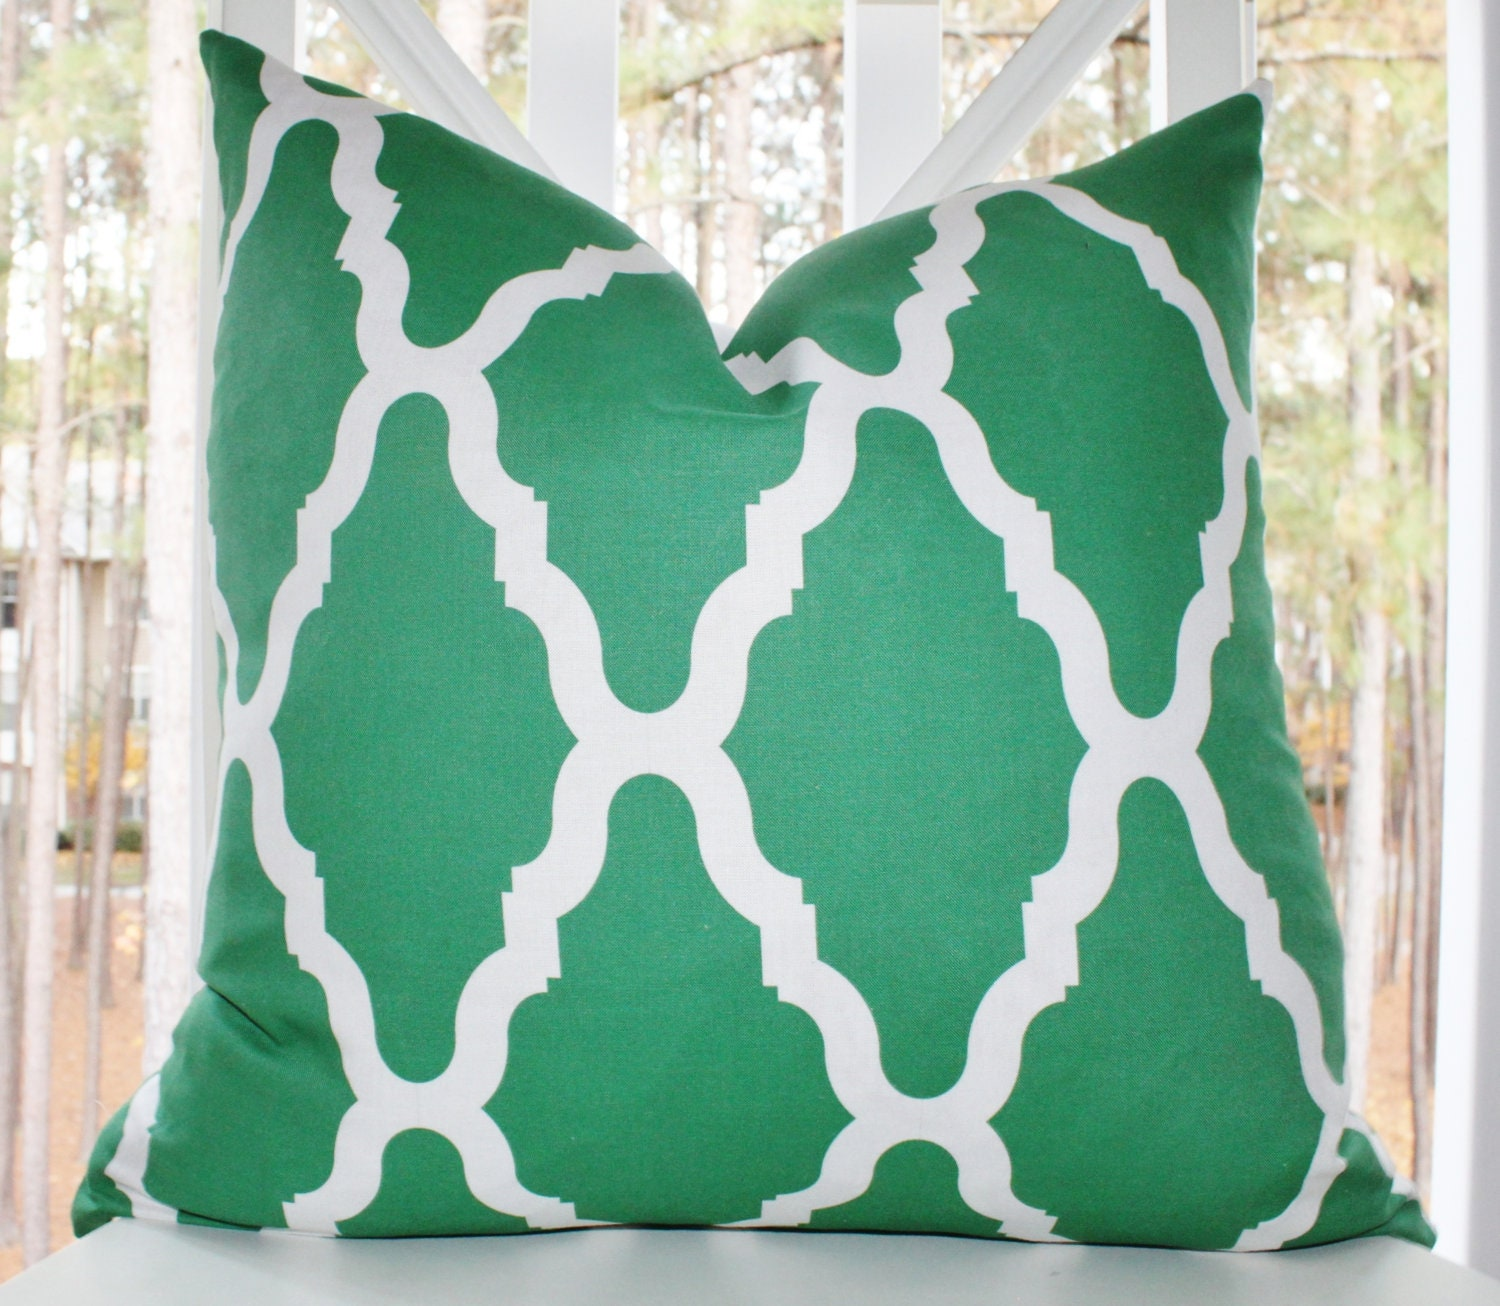 Green Throw Pillows Etsy : Chandeliers & Pendant Lights